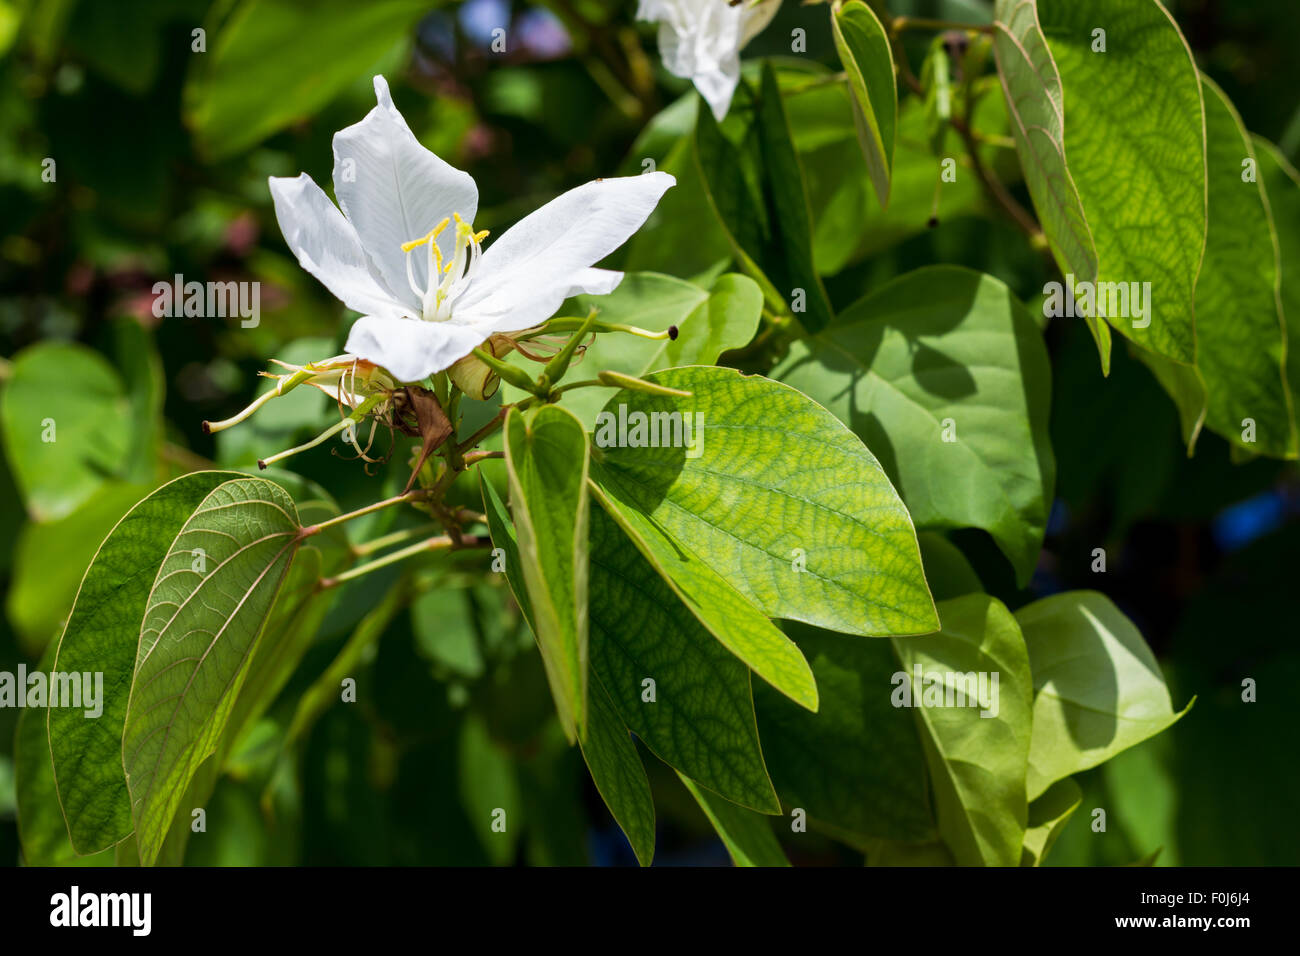 Orchid Tree Flower Stock Photos Orchid Tree Flower Stock Images